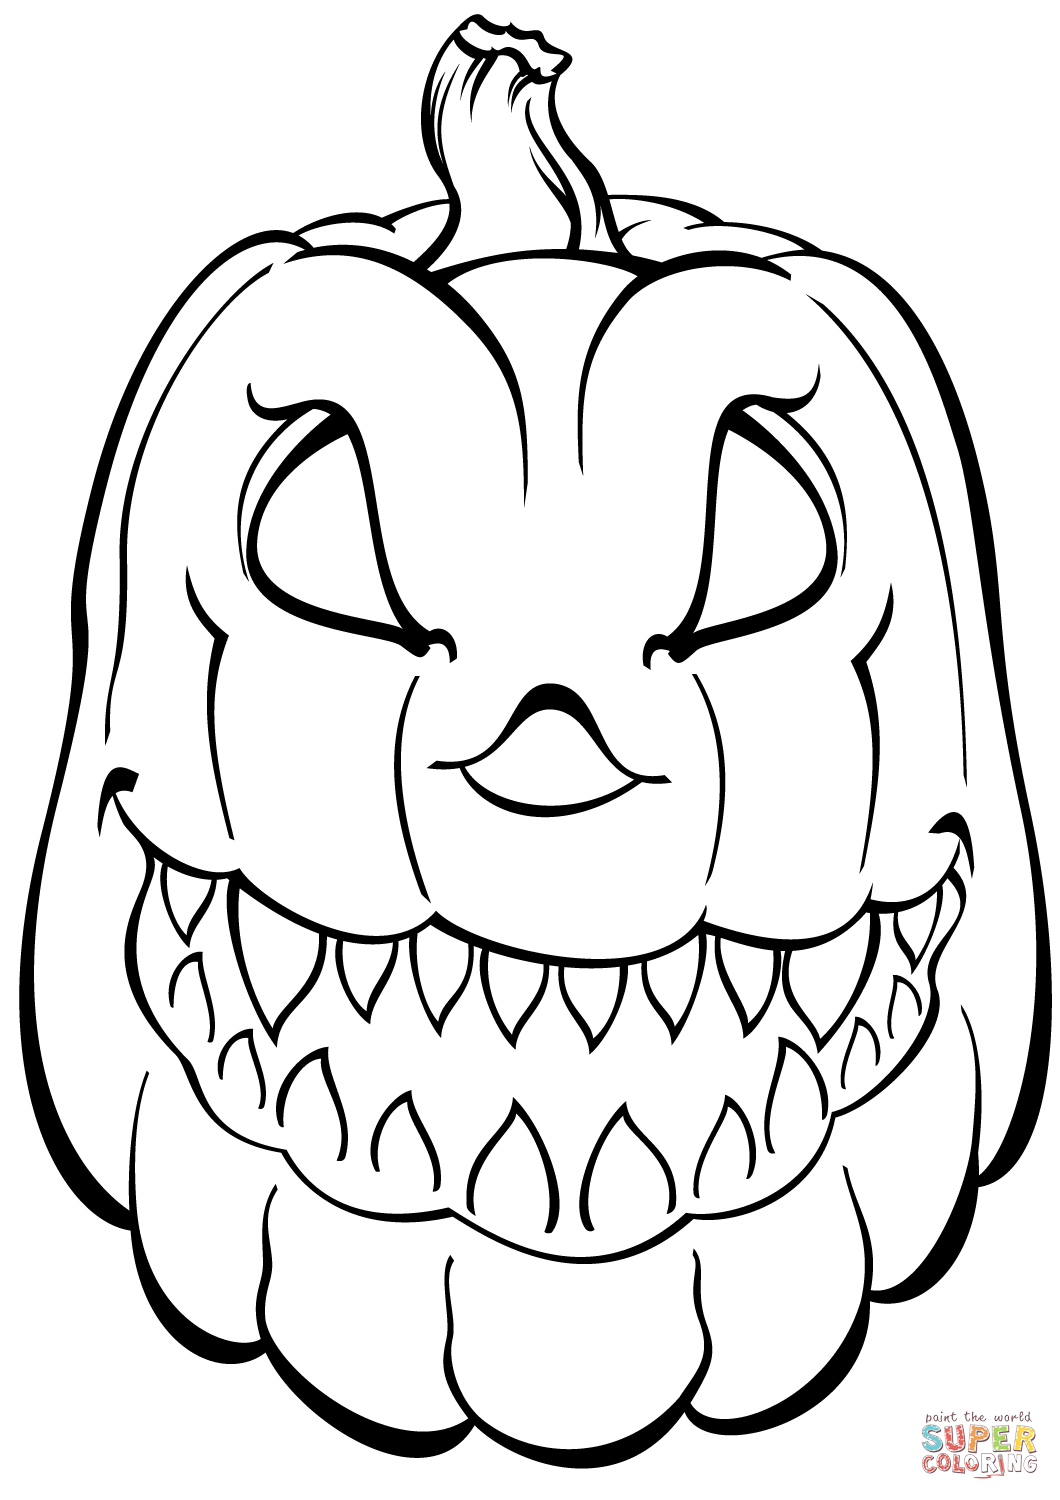 halloween pictures of pumpkins to color coloring pages pumpkin coloring pages collections 2011 color pumpkins of halloween pictures to